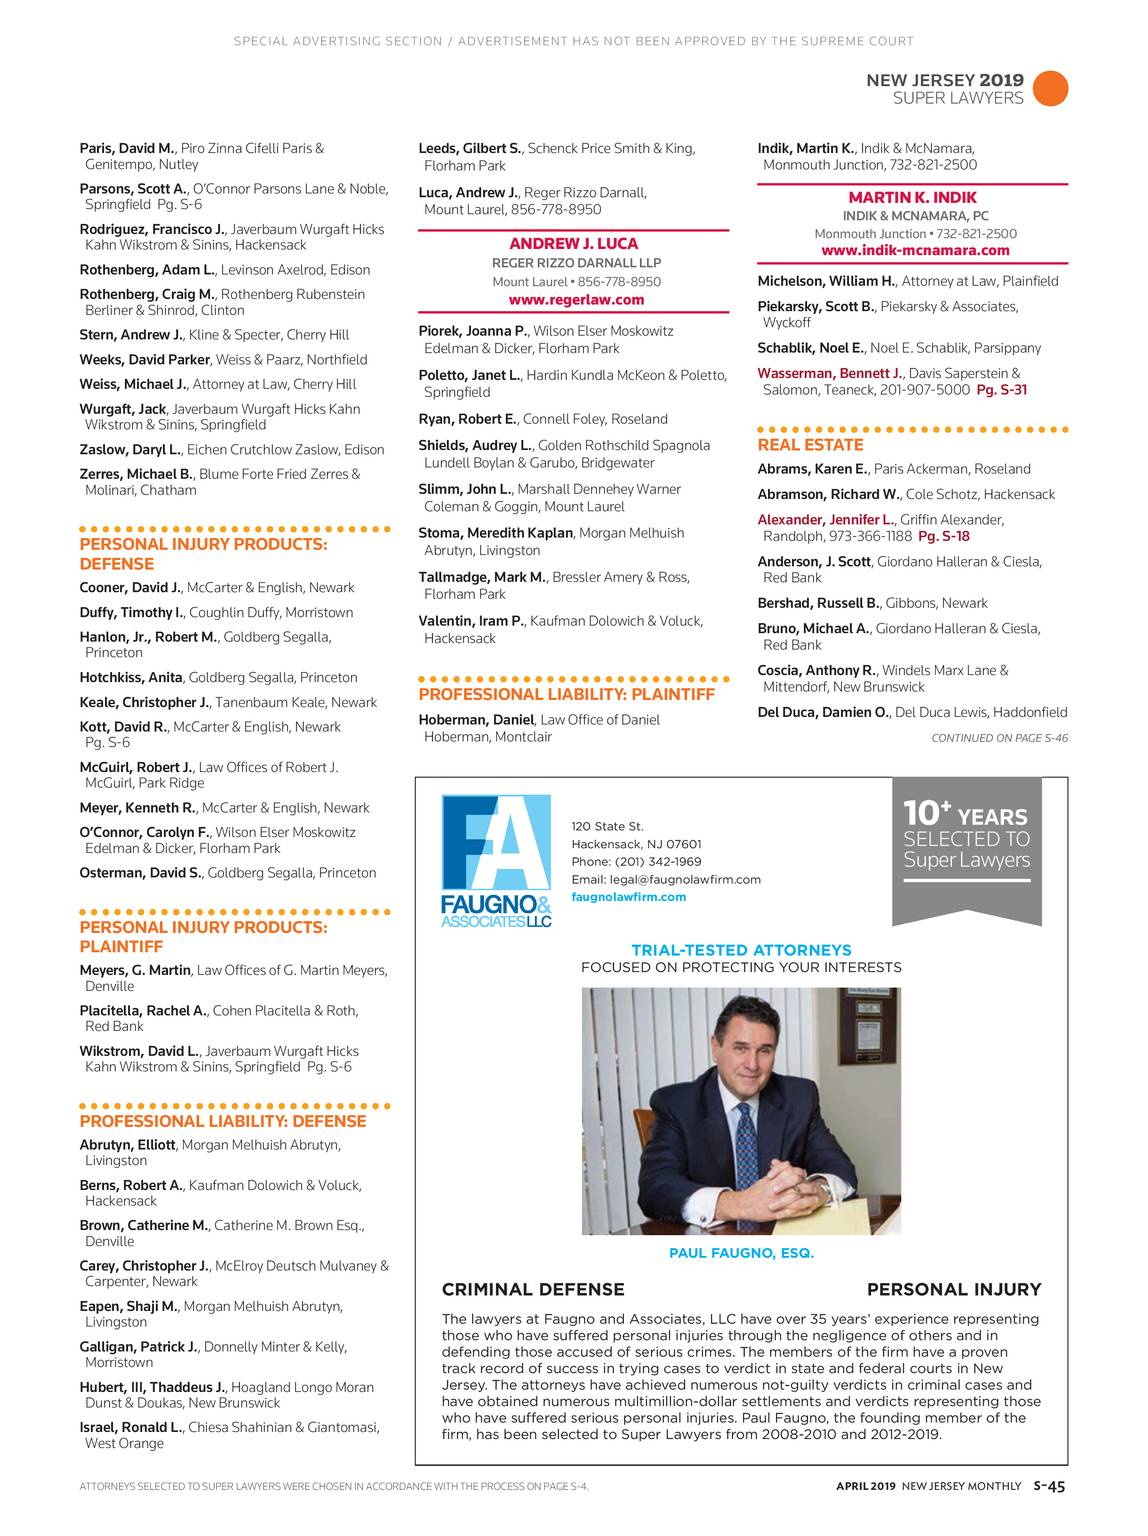 NJ Monthly - April 2019 - page S-46